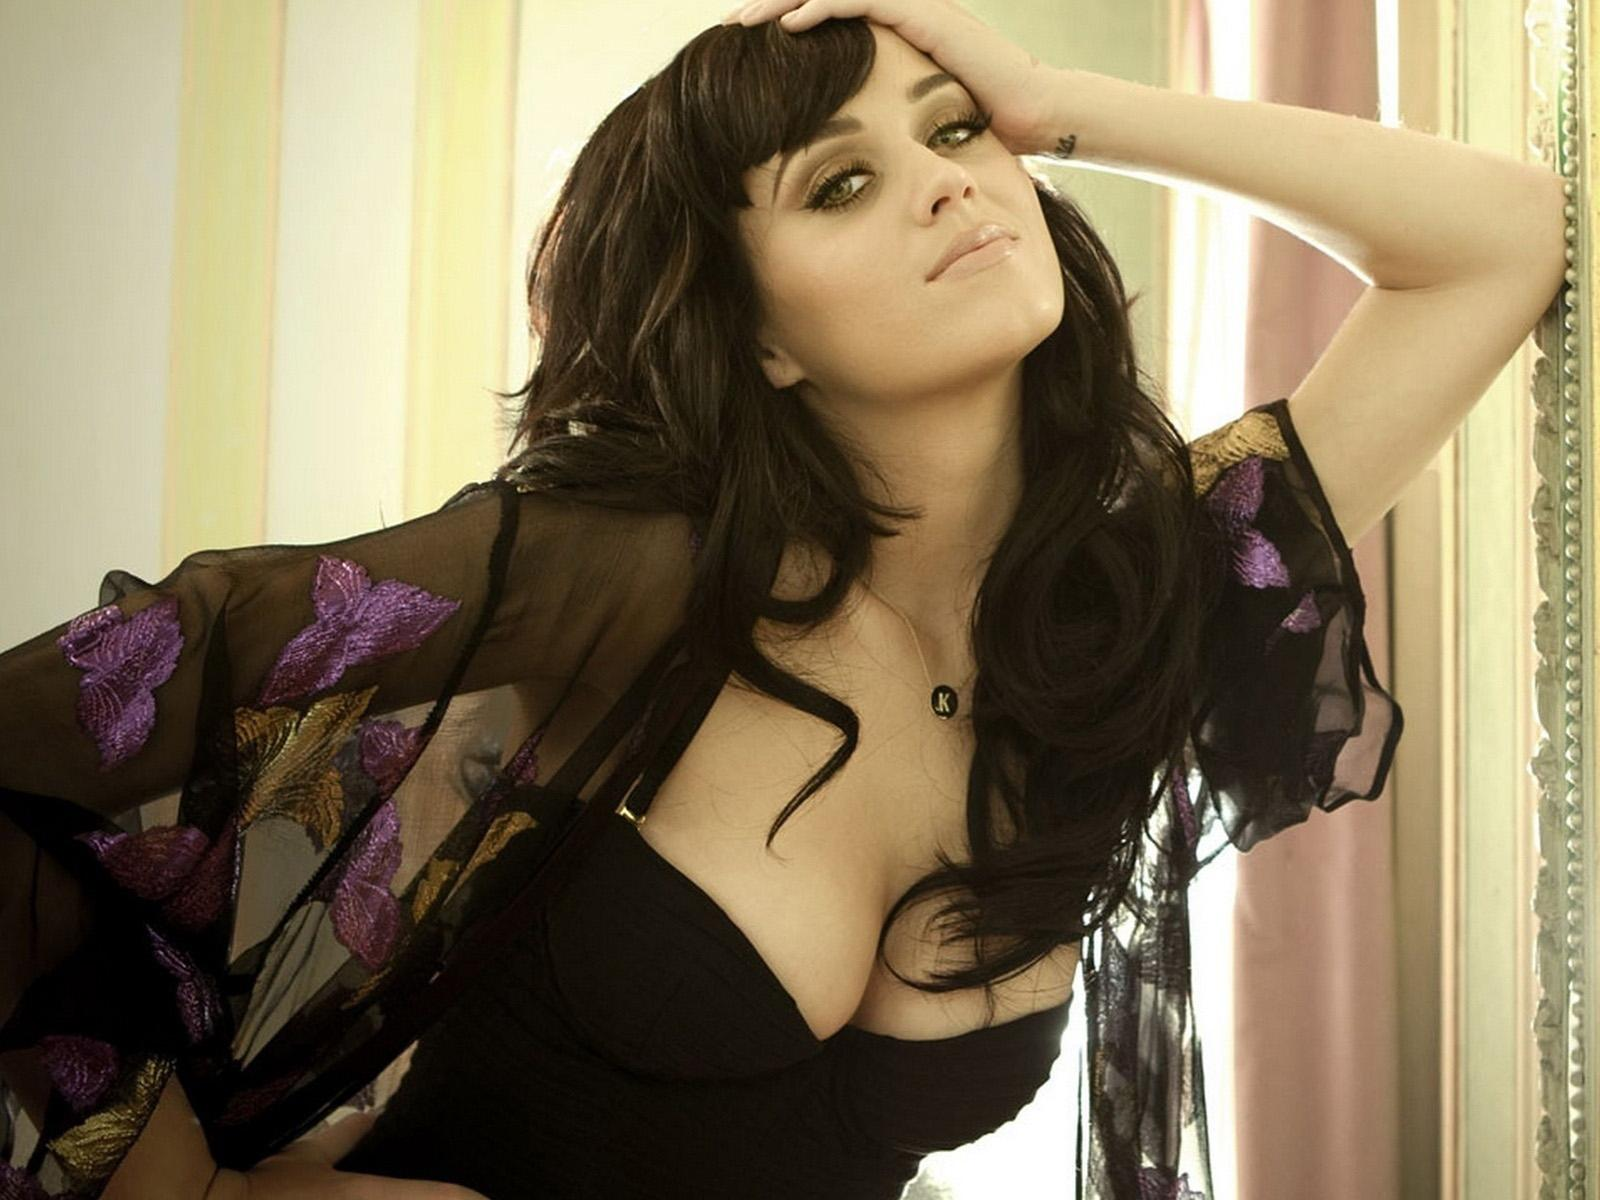 http://images4.fanpop.com/image/photos/24200000/KATY-PERRY-P-katy-perry-24210586-1600-1200.jpg